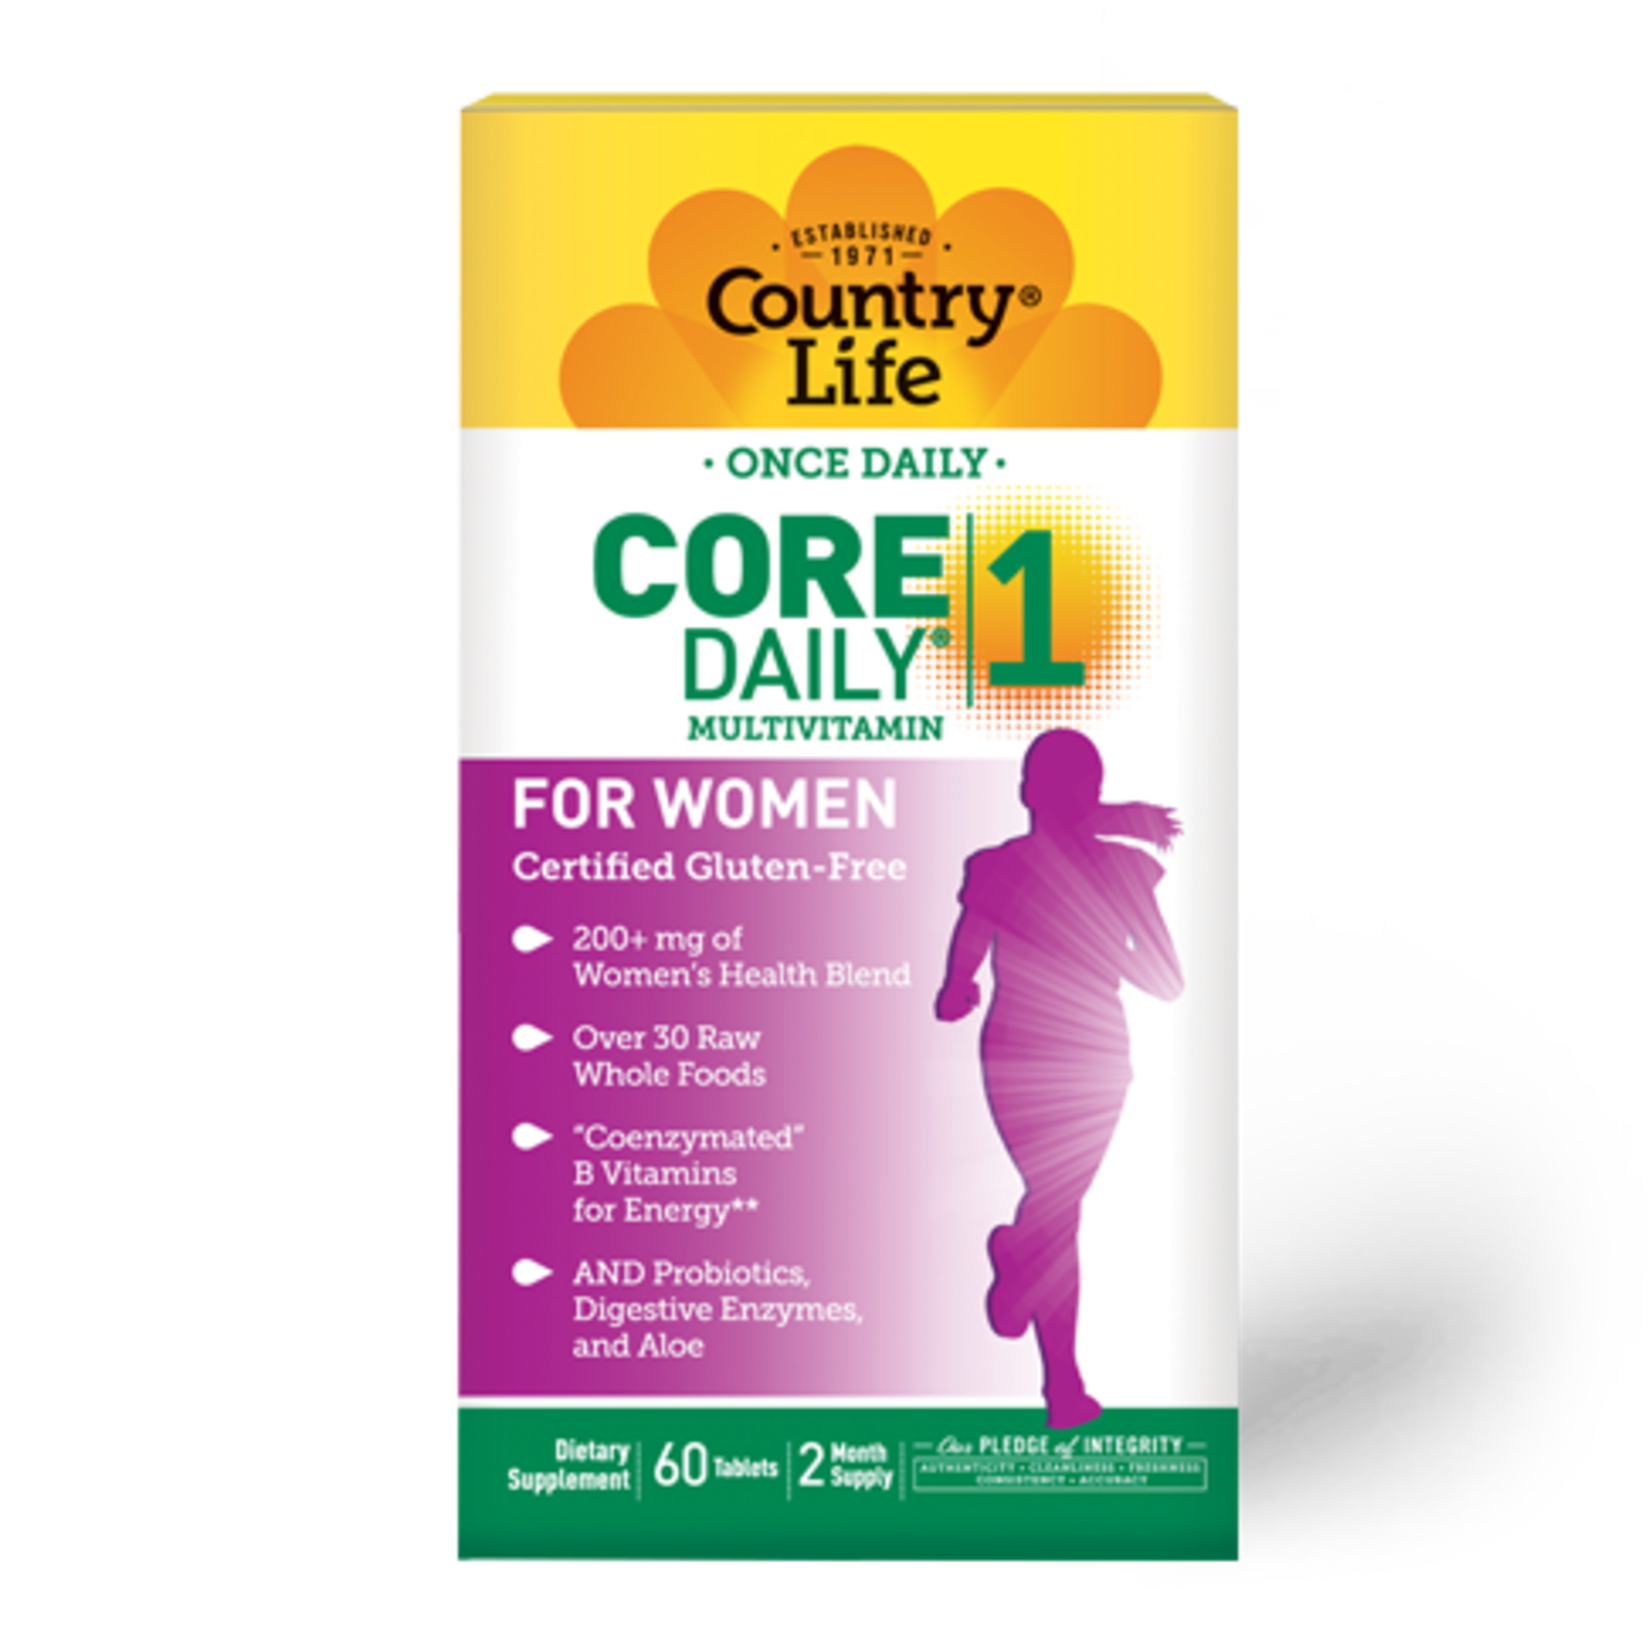 Country Life Country Life Core Daily 1 Multivitamin for Women 60 Tablets